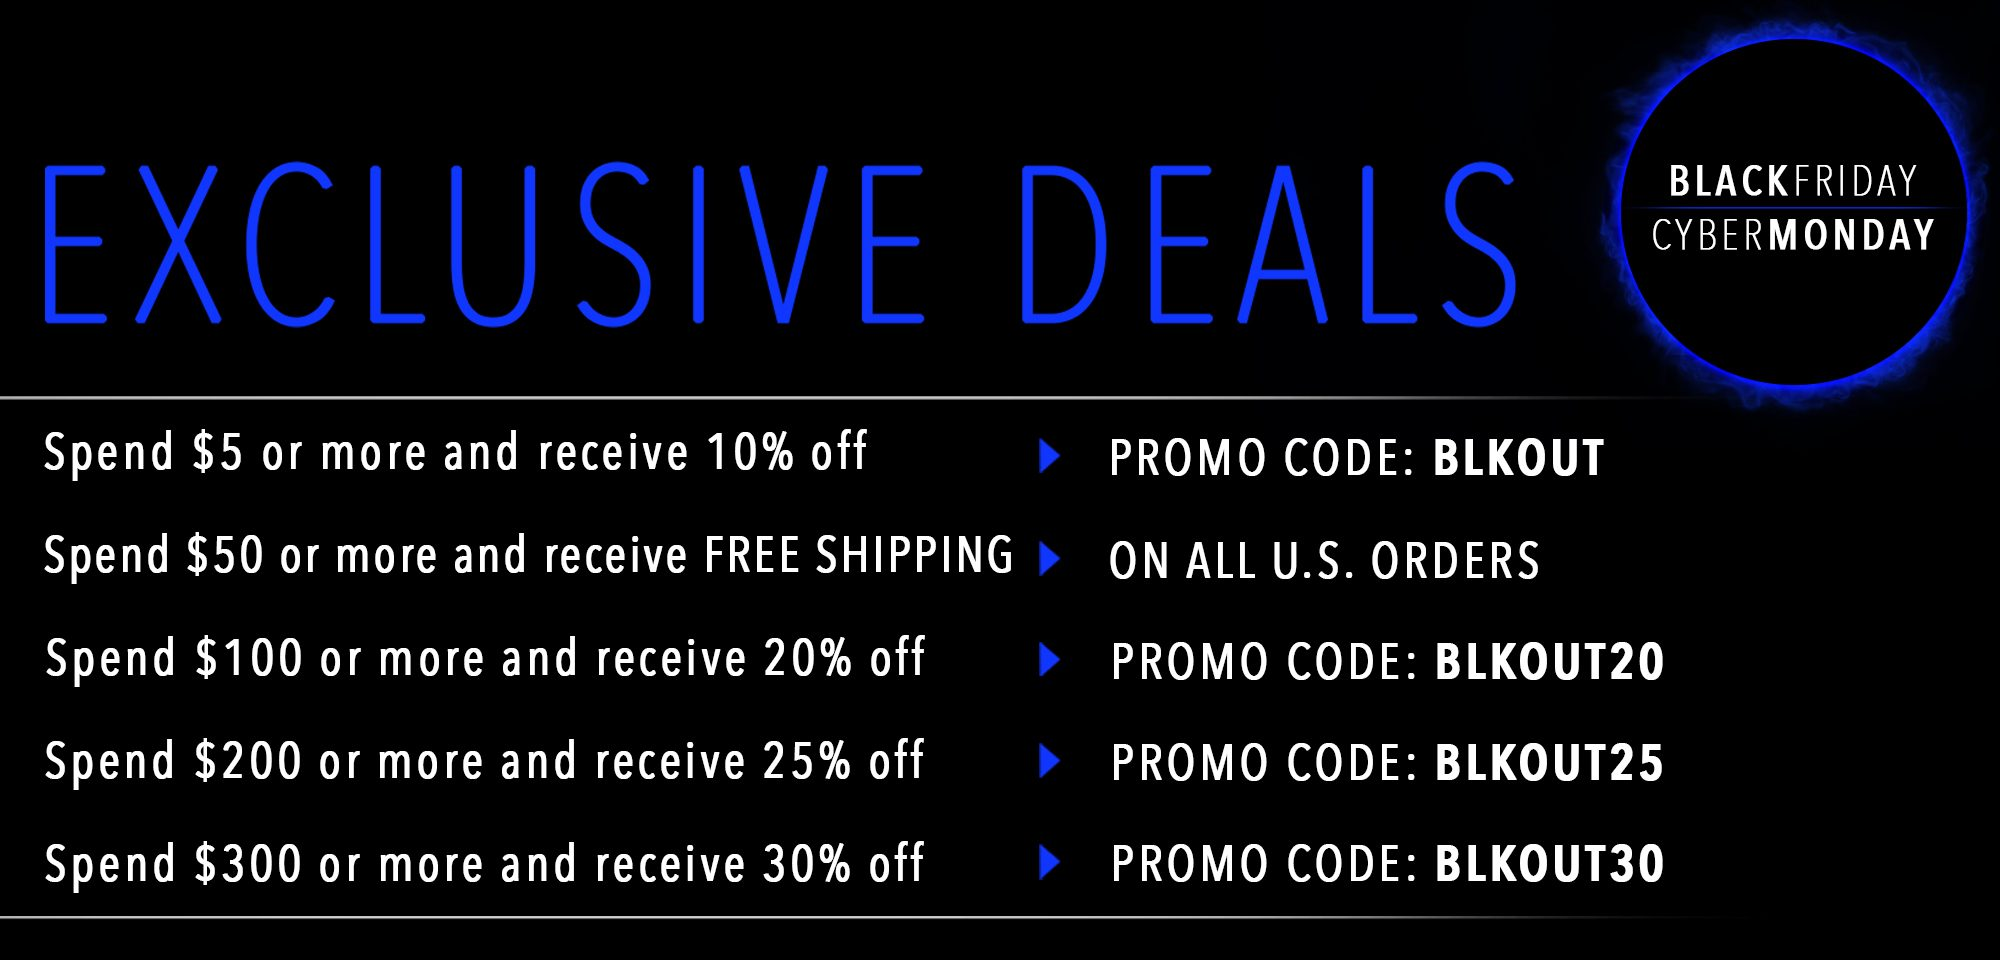 Black Friday, Cyber Monday 2019 Exclusive Deals Banner